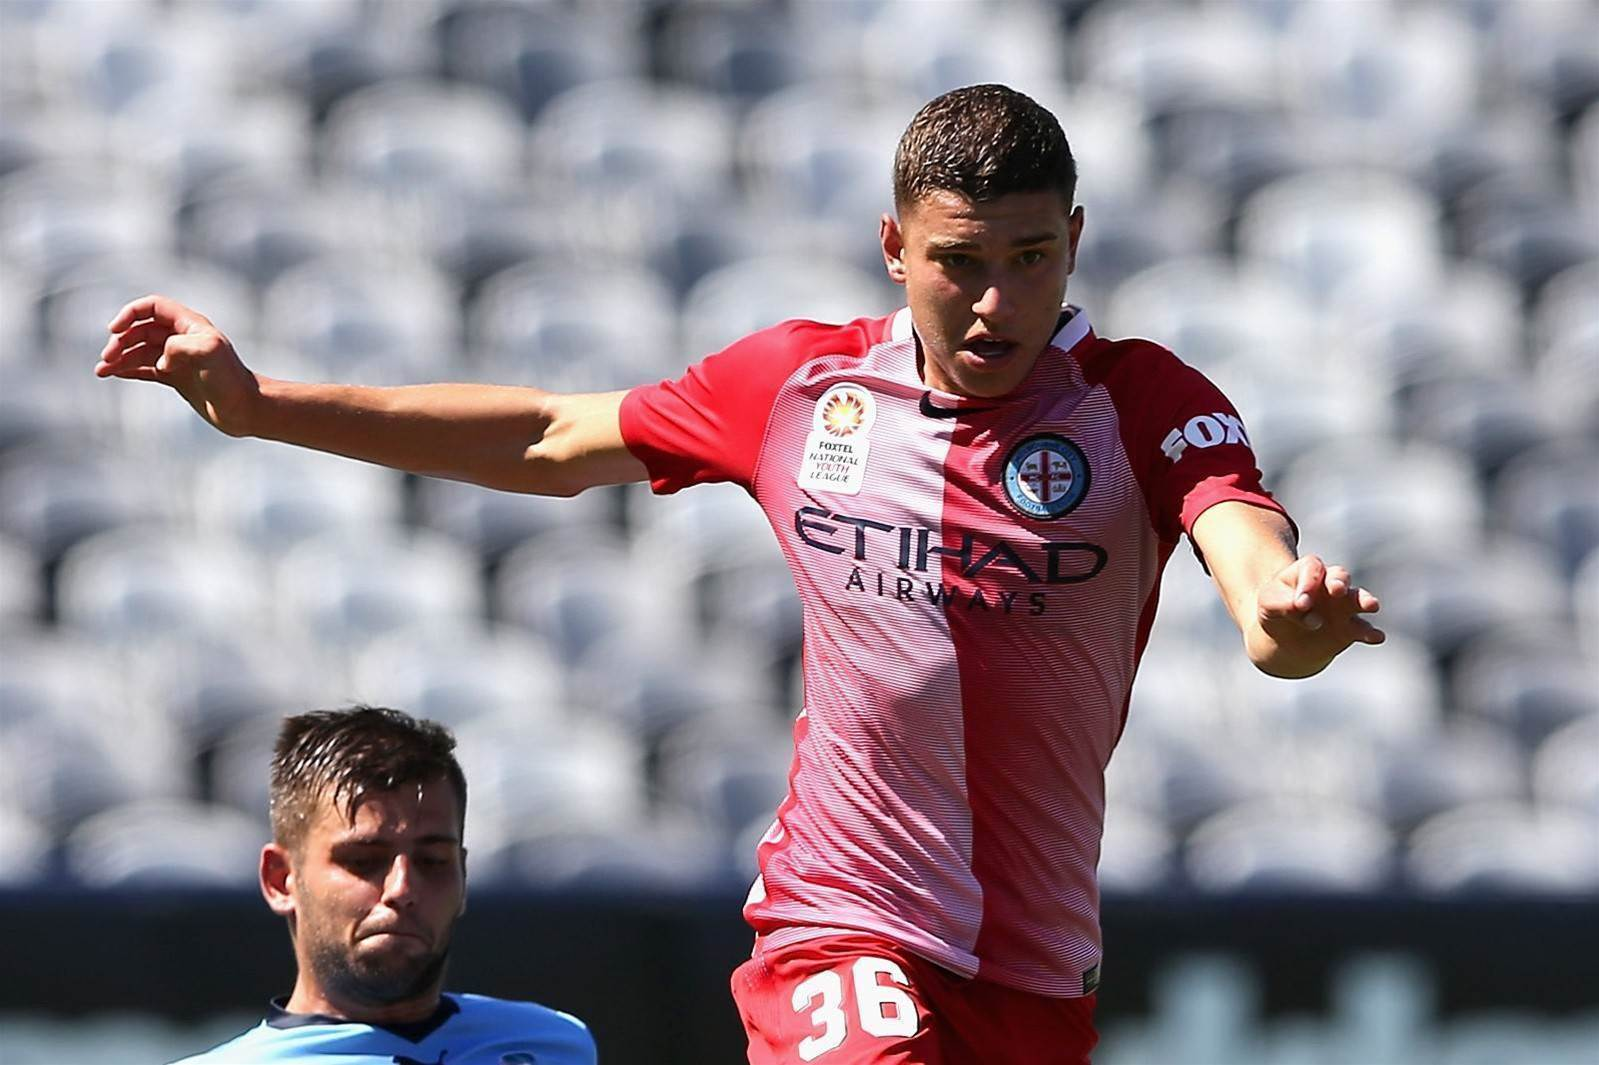 Perieas and Sakalis: Melbourne City's Wunderkinds